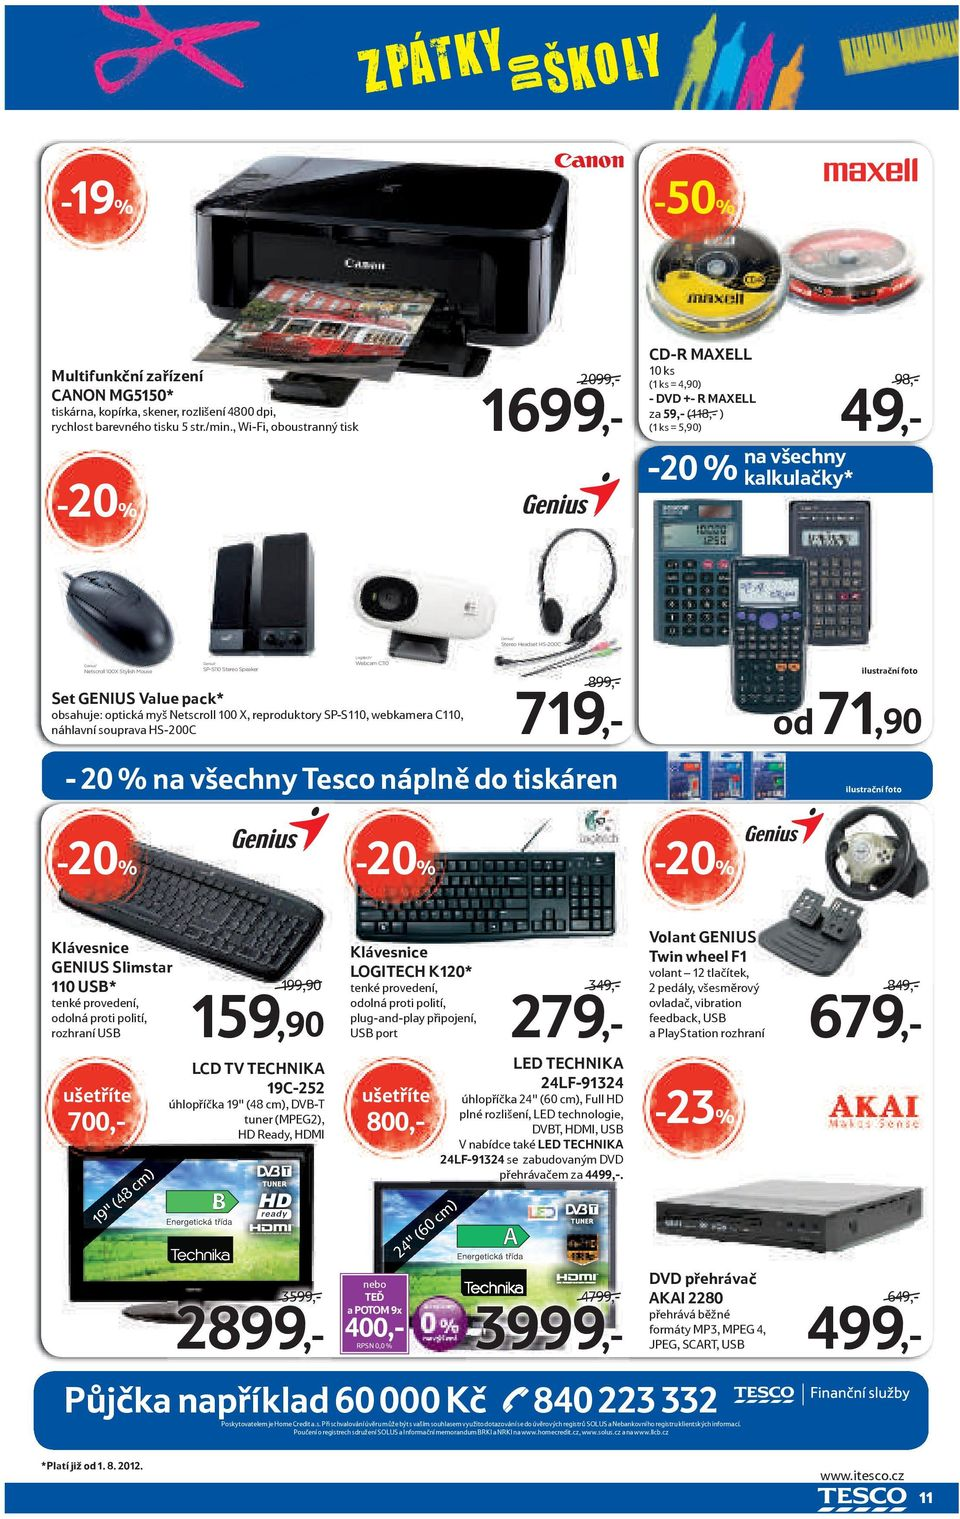 HS-200C Logitech Genius Webcam C110 Genius Netscroll 100X Stylish Mouse SP-S110 Stereo Speaker Set GENIUS Value pack* 719,- CZ Optická myš Netscroll 100 X Sada stereo reproduktorů 2.